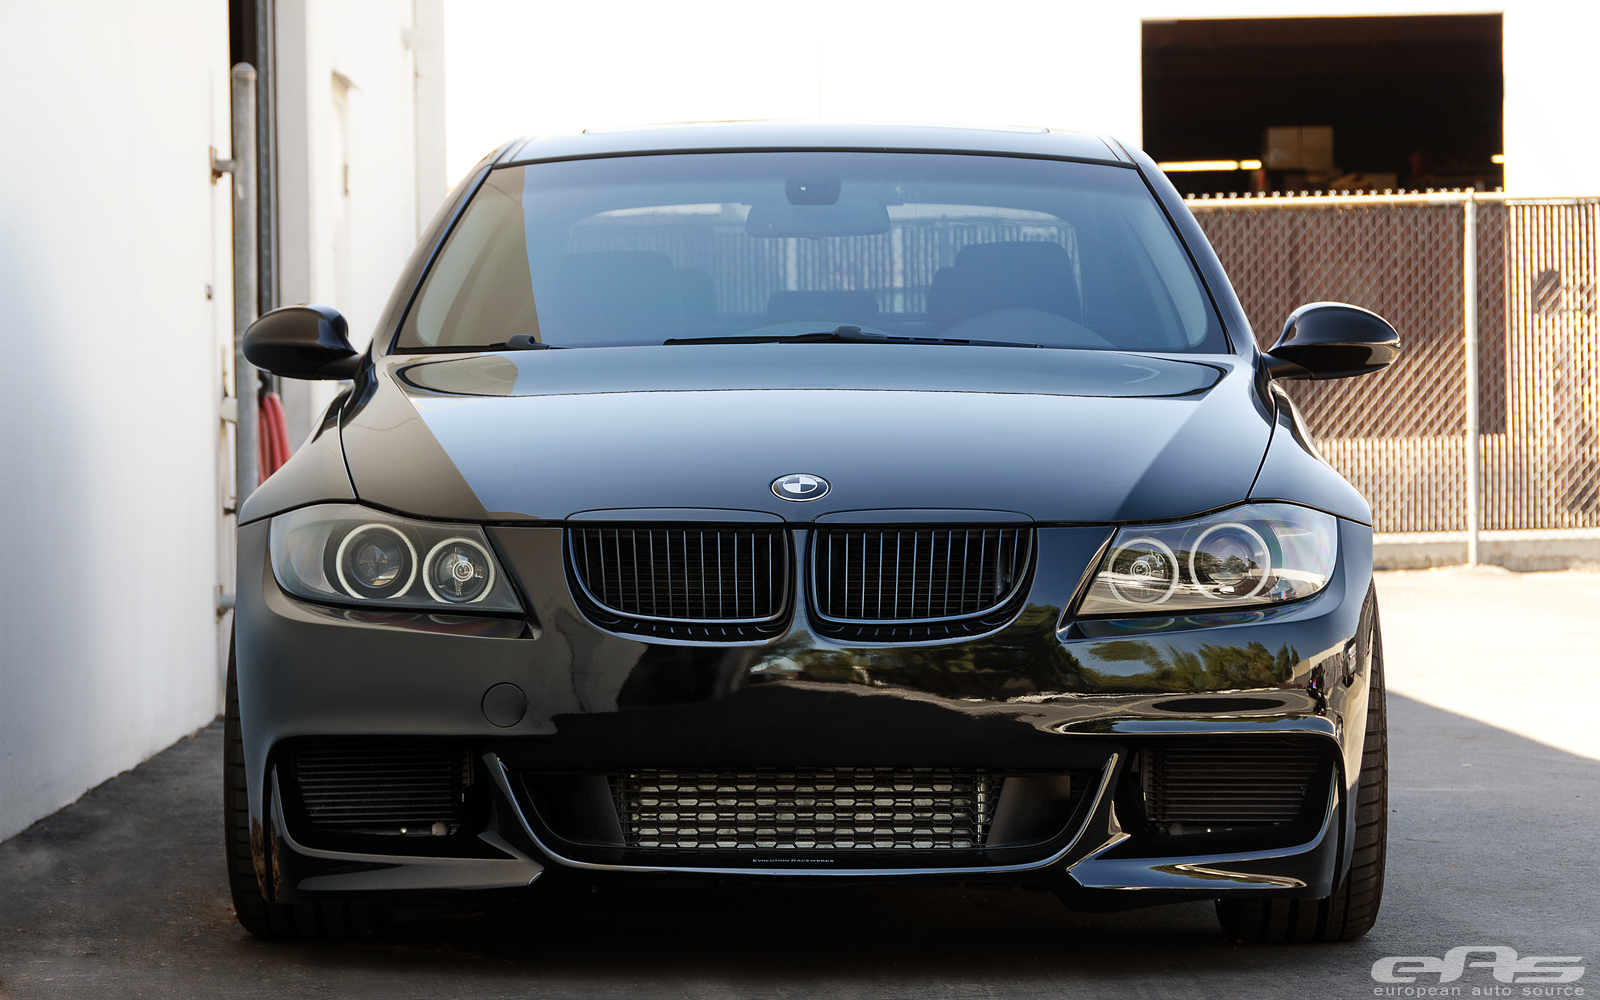 extremely tuned bmw e90 335i hails from eas autoevolution. Black Bedroom Furniture Sets. Home Design Ideas